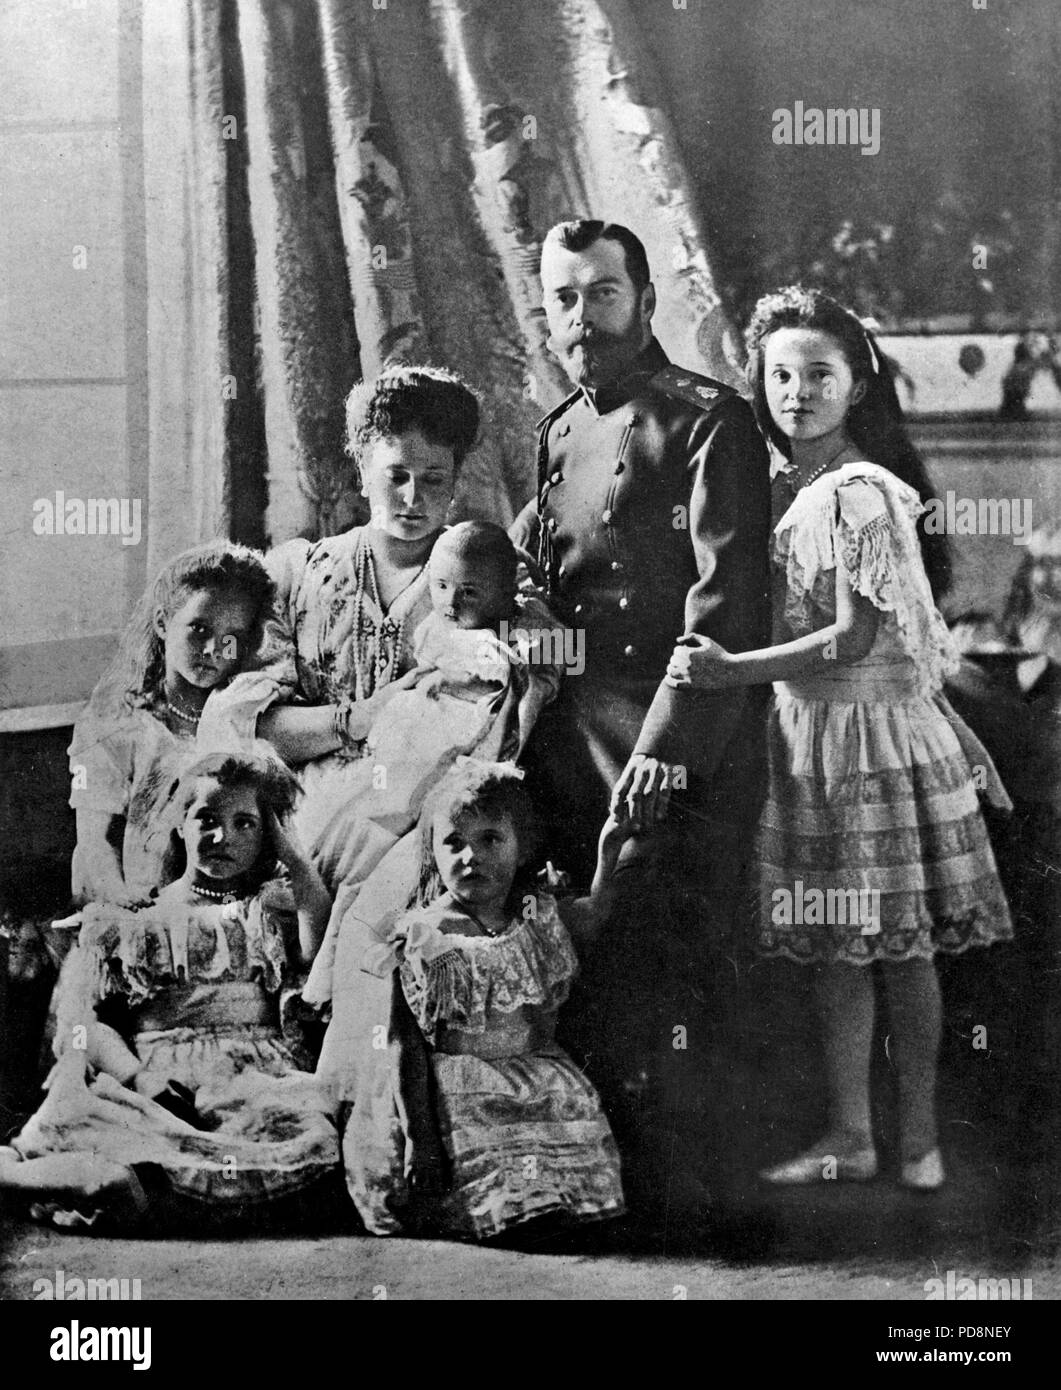 Tsar Nicholas II of Russia. 1868-1918. The last emperor of Russia. Pictured here together with his wife Alexandra and his five children Tatiana, Anastasia, Alexei, Maria and Olga. 1904 - Stock Image